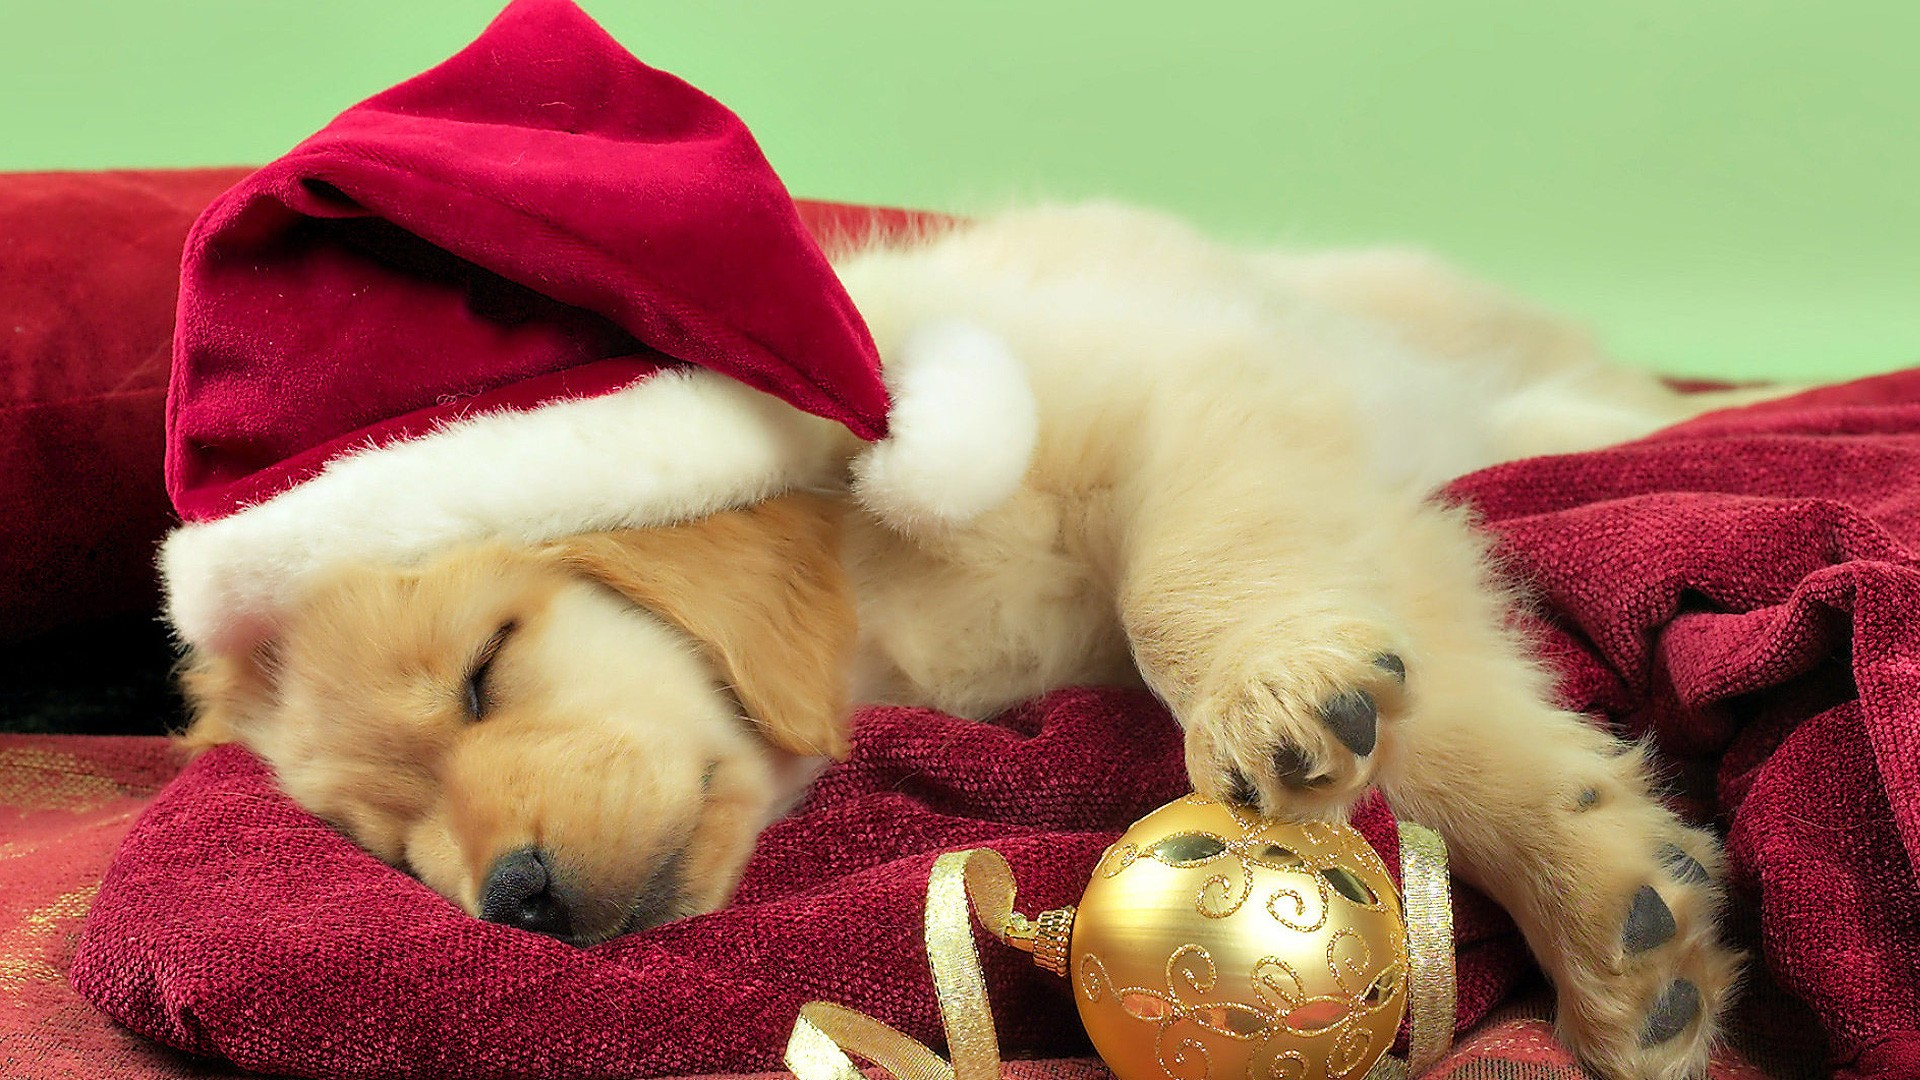 Cute Christmas Puppies.Cute Puppies Christmas Theme Photos Cute Puppies Photo